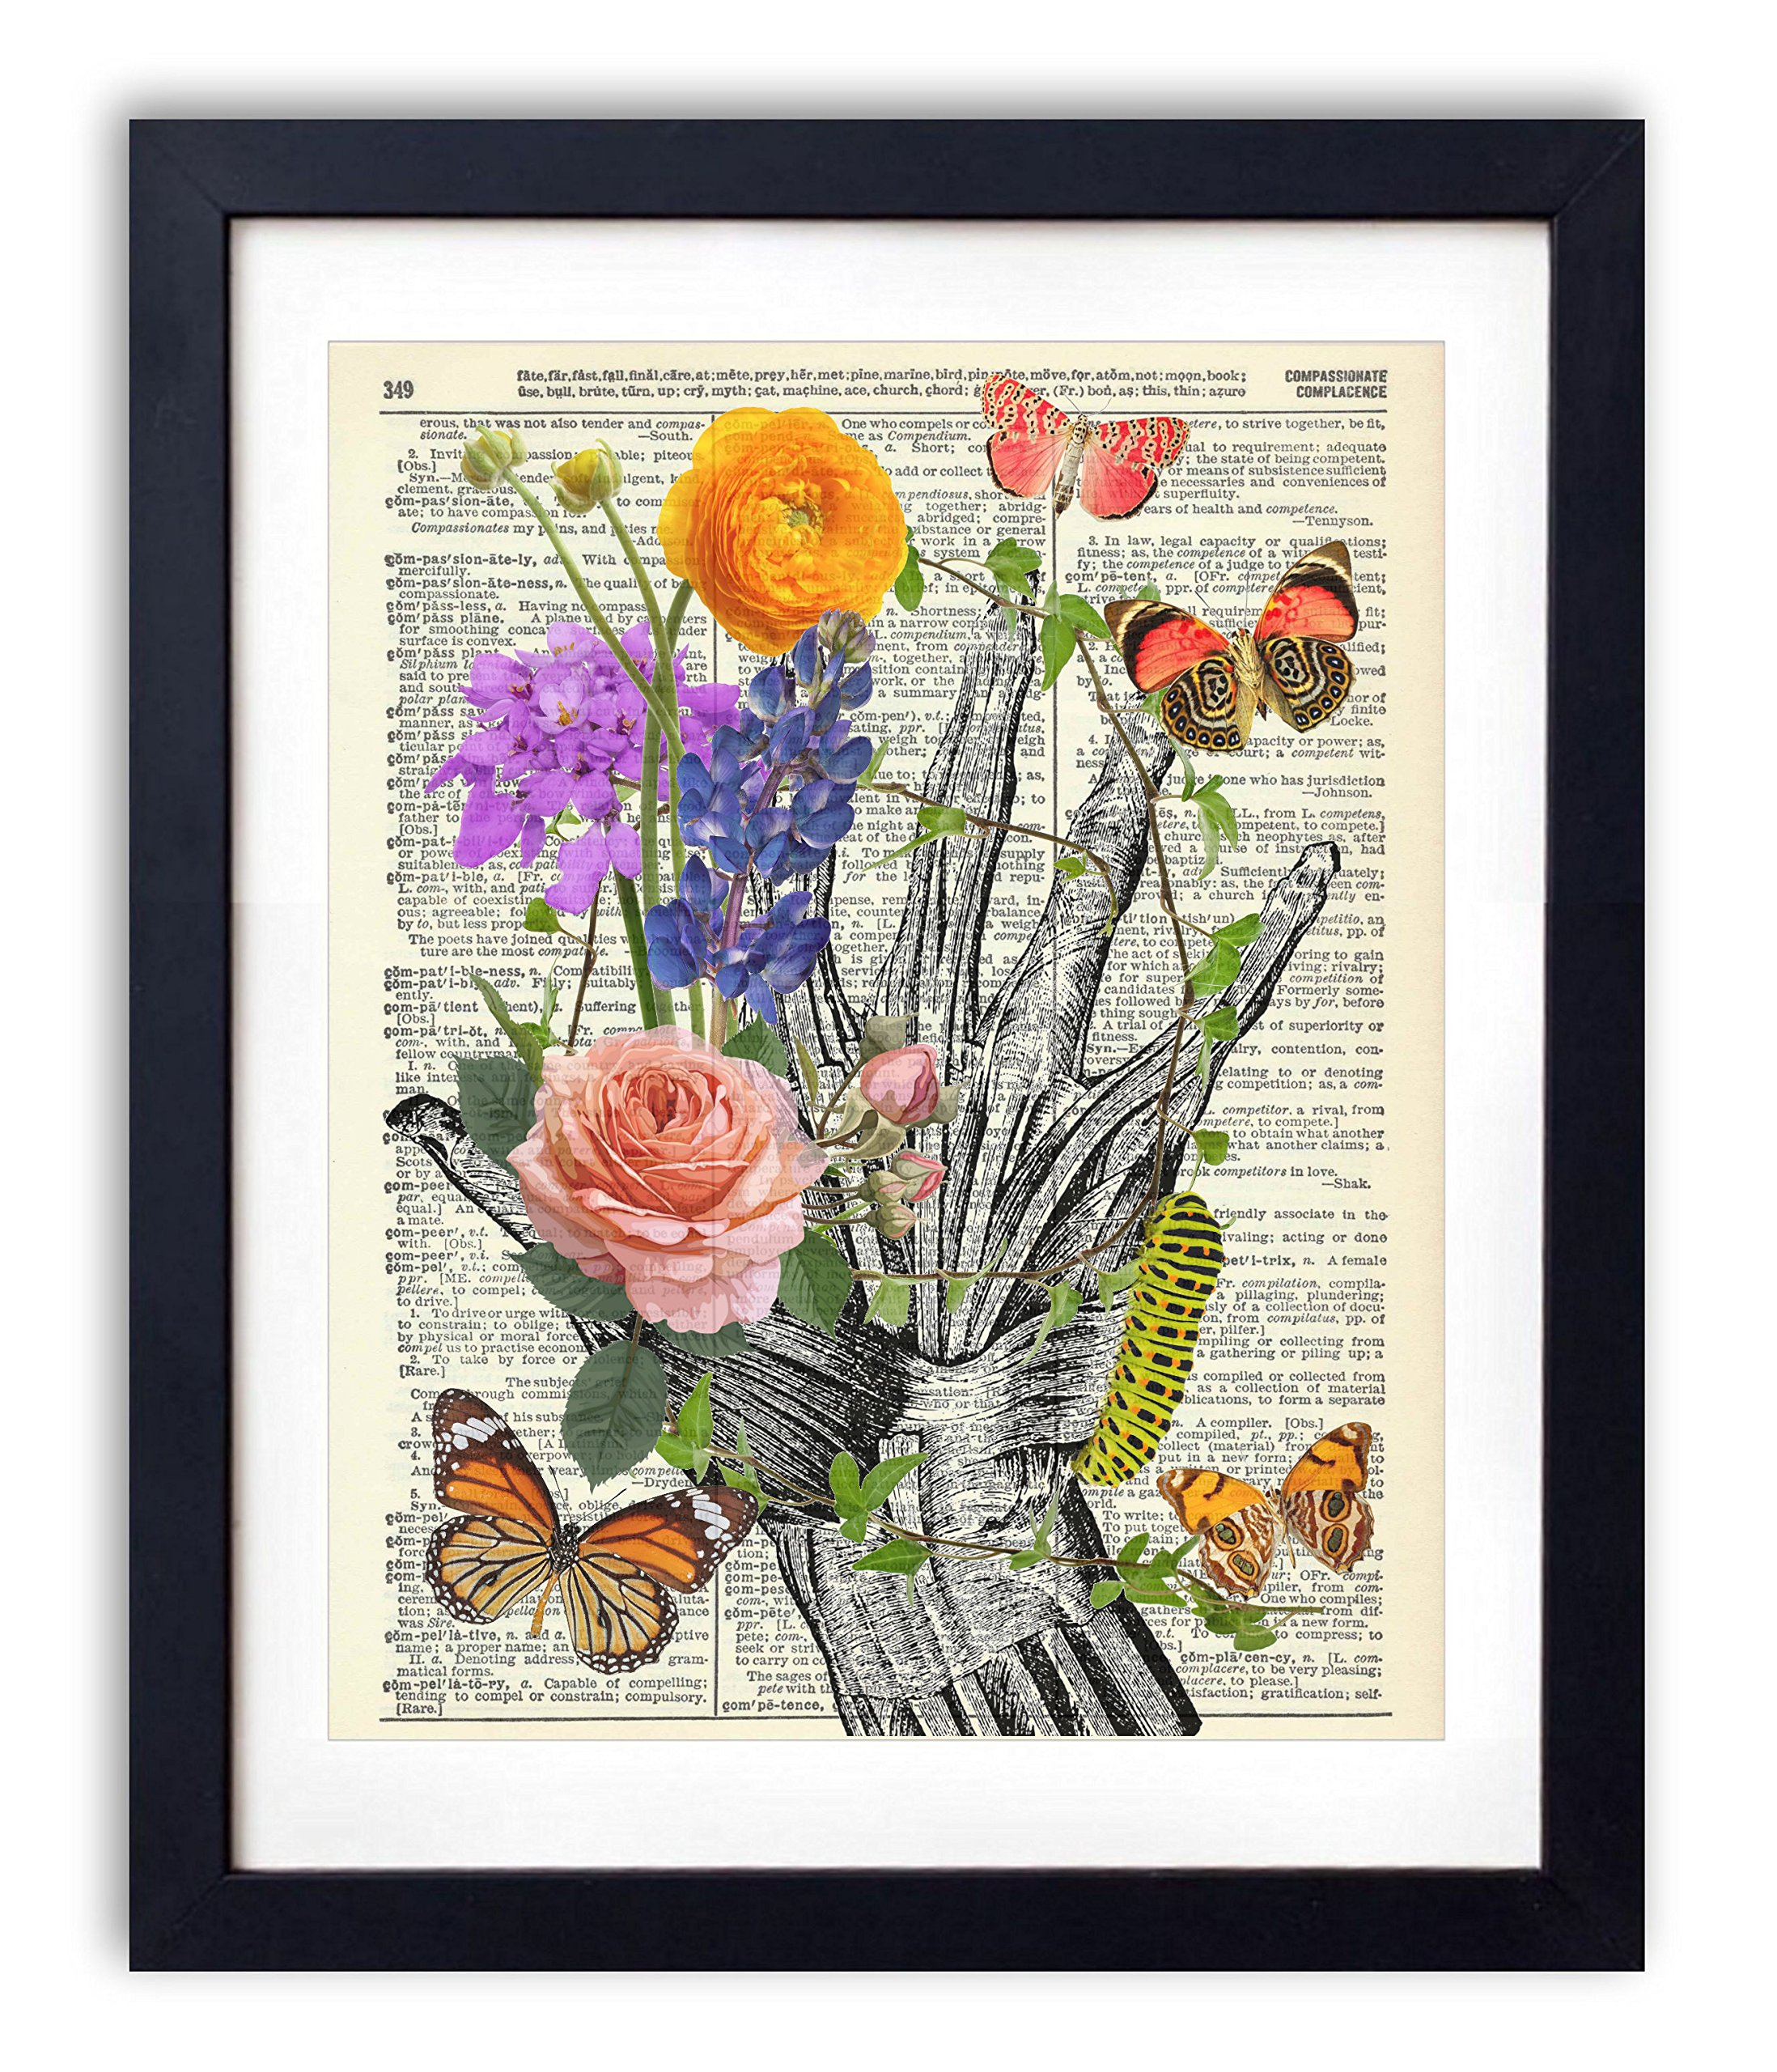 Hand With Flowers and Butterflies Upcycled Vintage Dictionary Art Print 8x10 by Vintage Book Art Co.